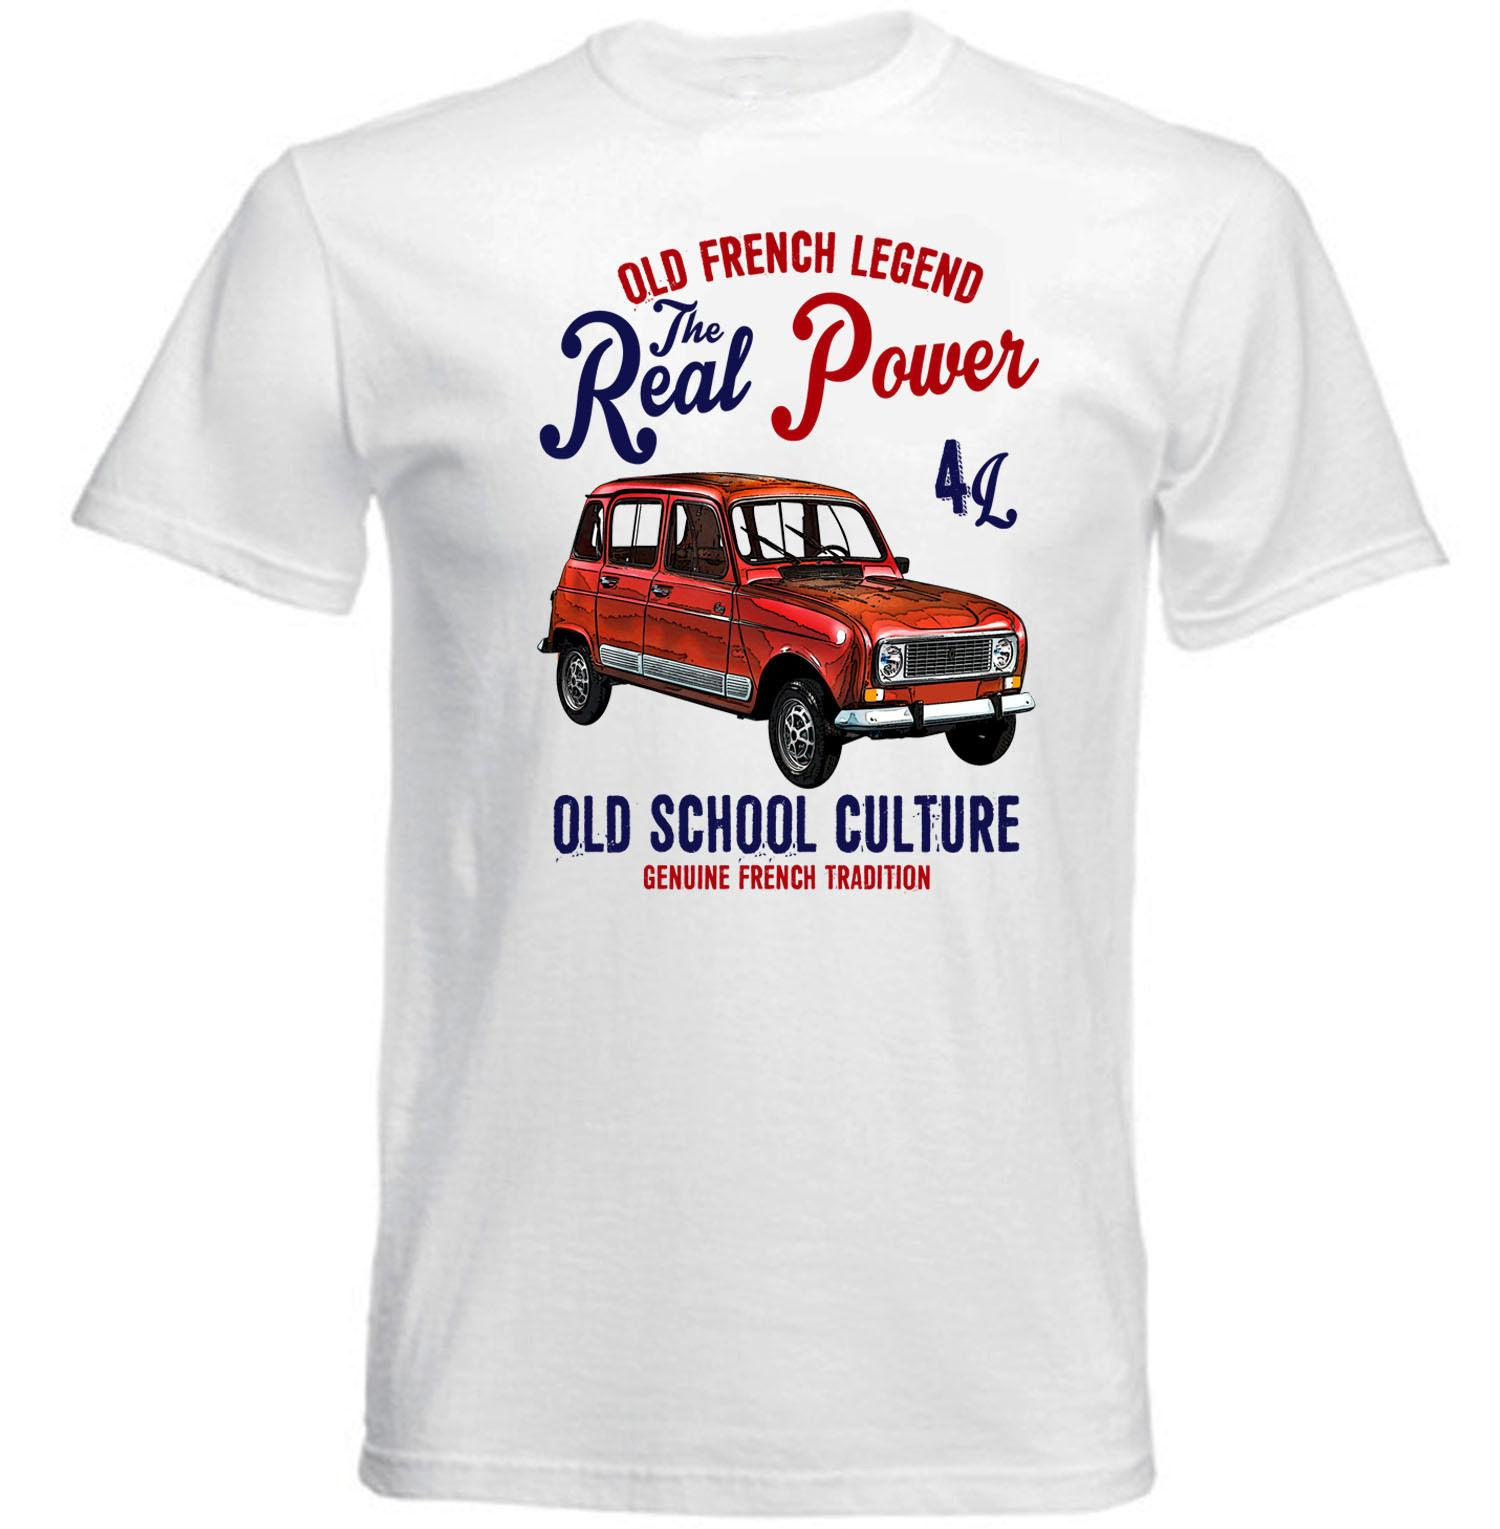 2019 Fashion Hot VINTAGE FRENCH CAR RENAULT 4L - NEW COTTON T-SHIRT